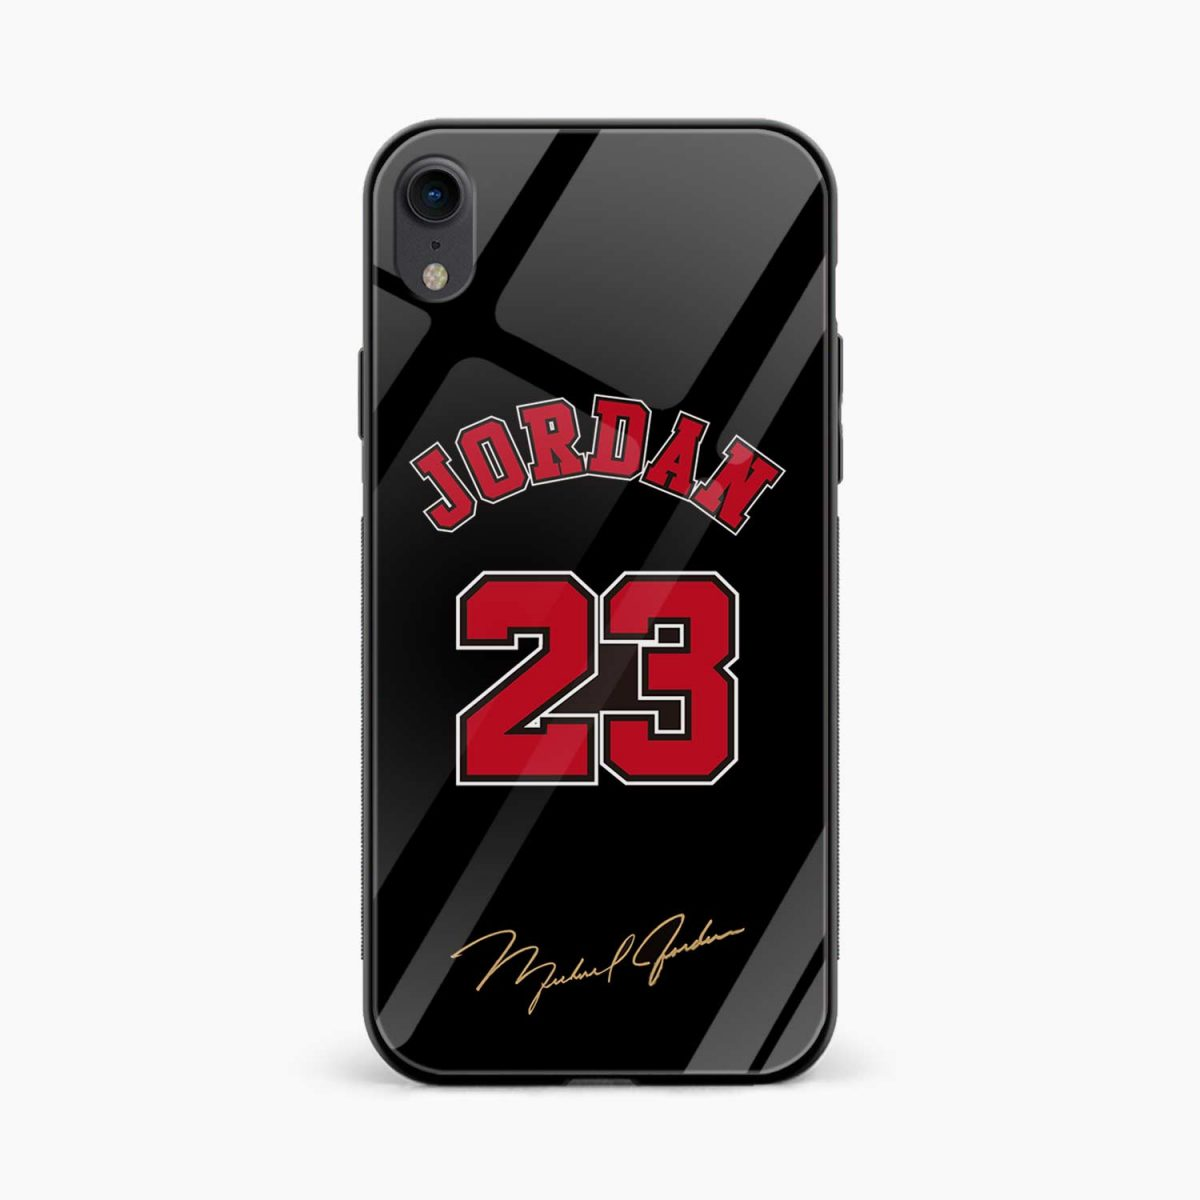 jordan 23 apple iphone xr back cover front view